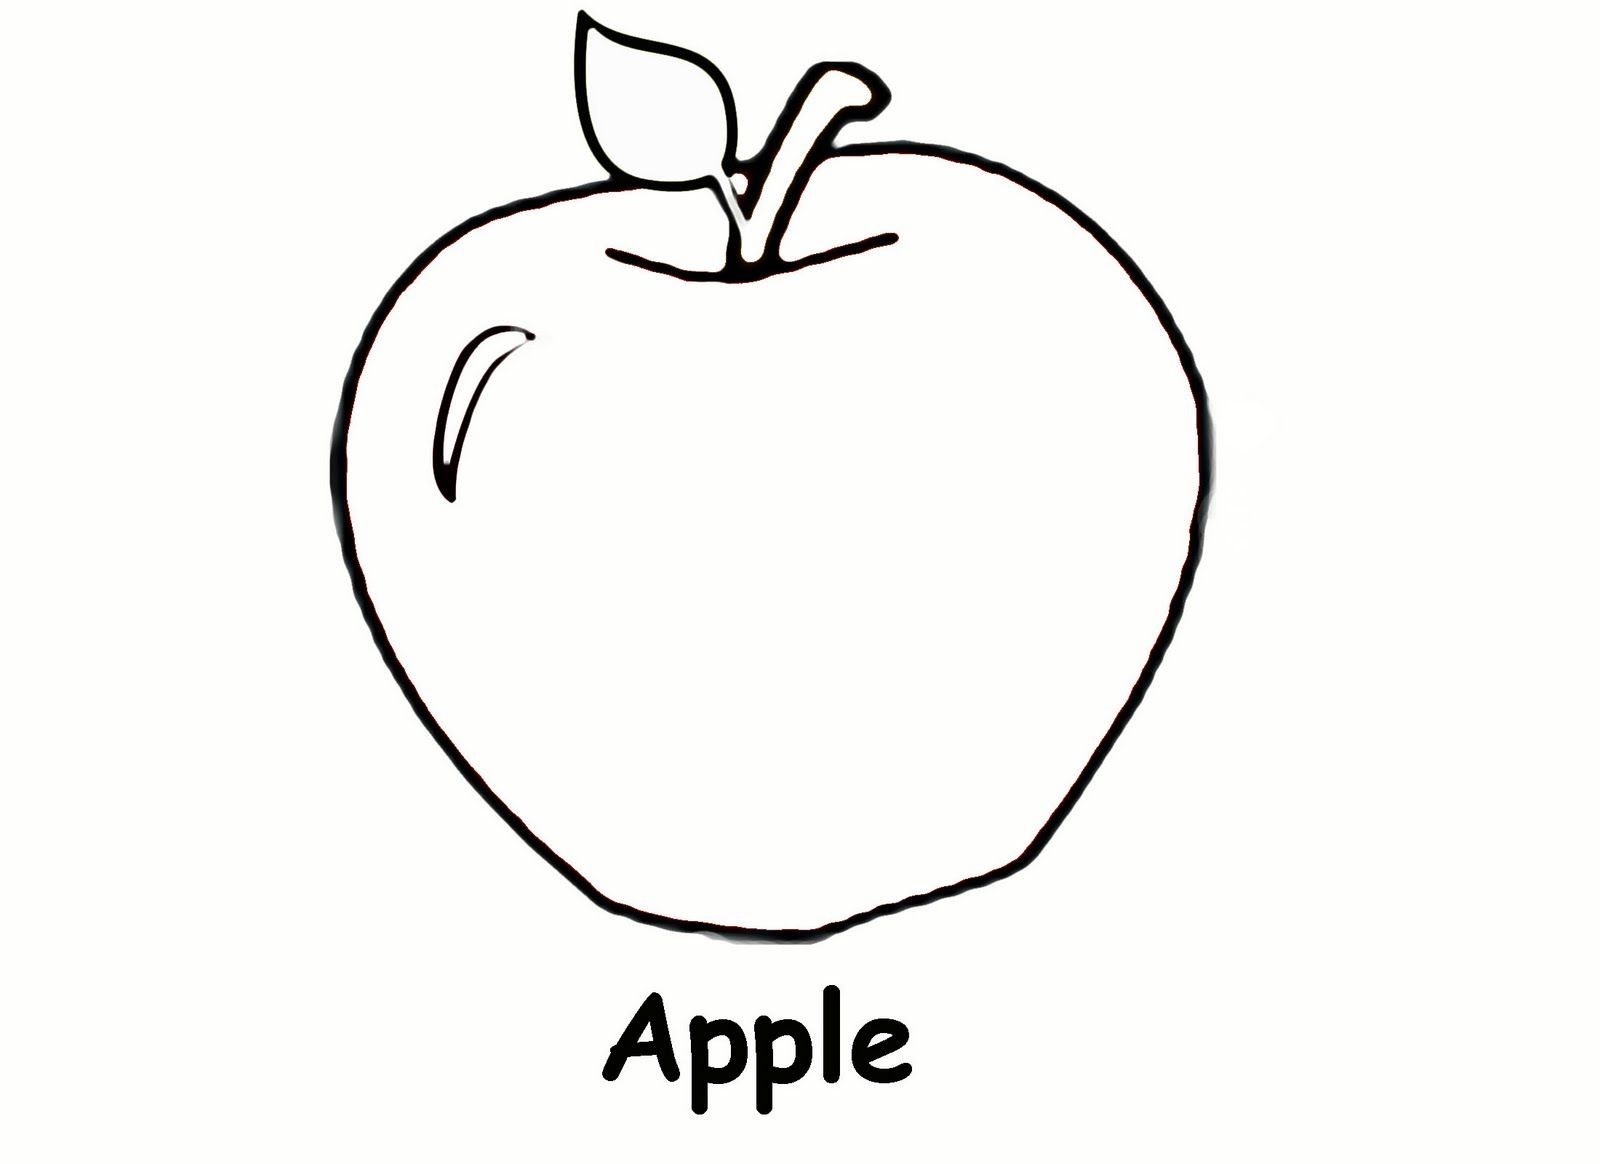 Free coloring pages for preschoolers - Preschool Apple Coloring Page Sketch Coloring Page Preschool Coloring Worksheets Free Printables